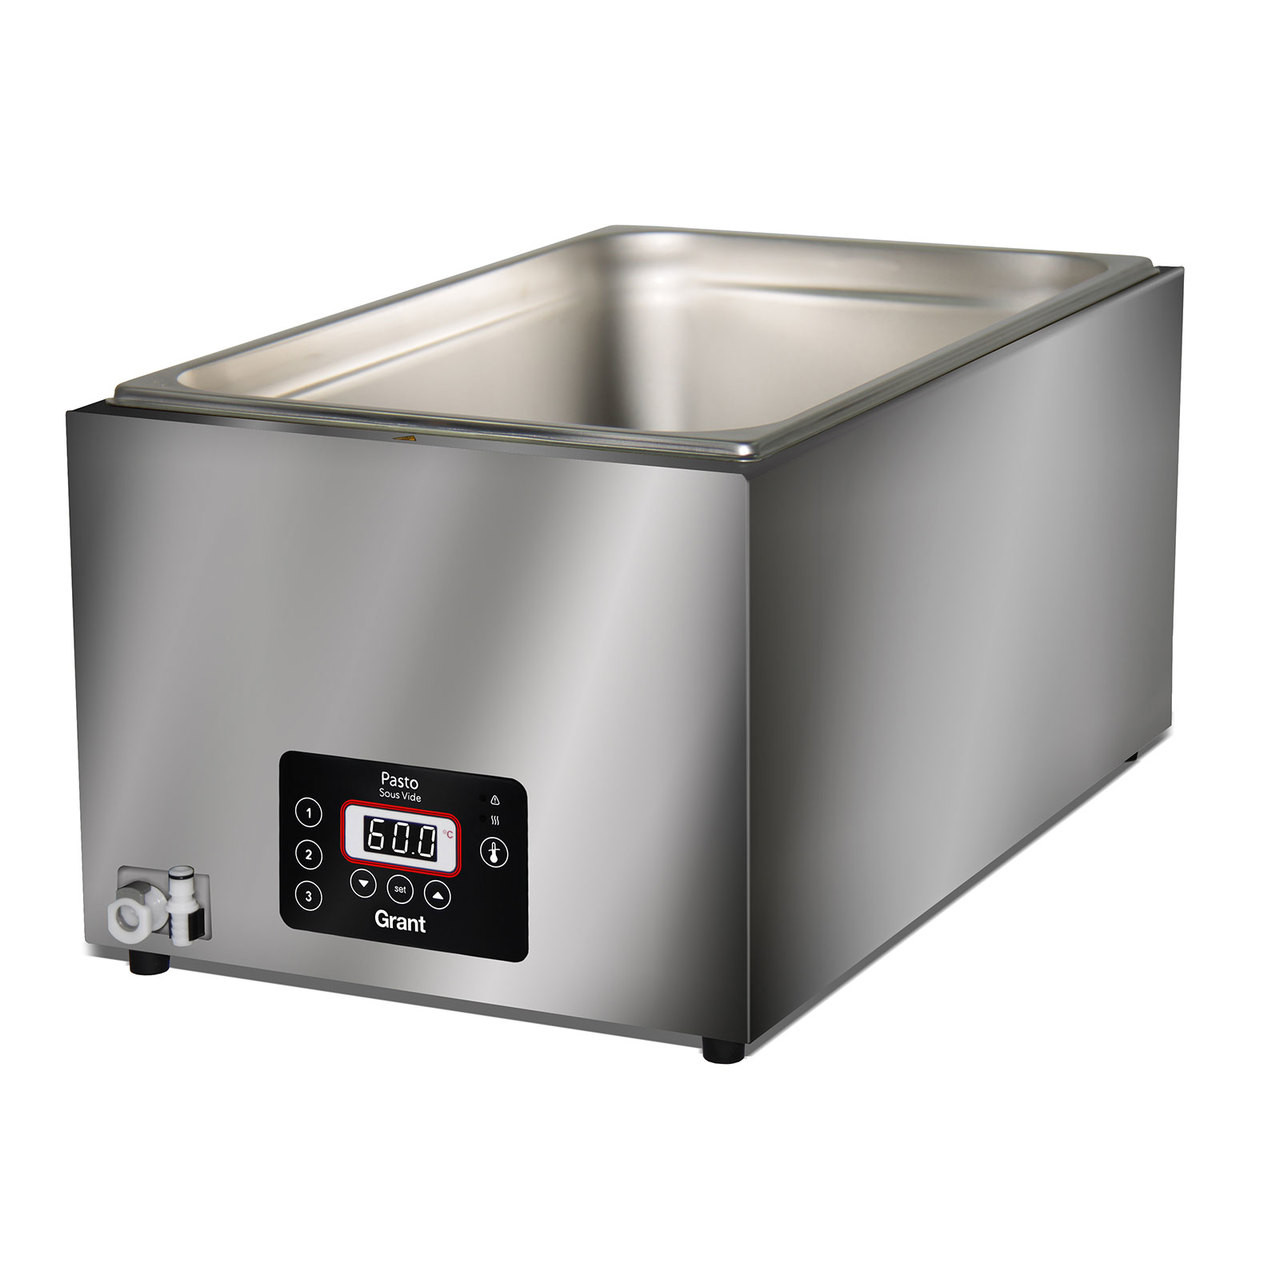 Grant - Pasto Sous Vide Water Bath 26lt - Stainless Steel